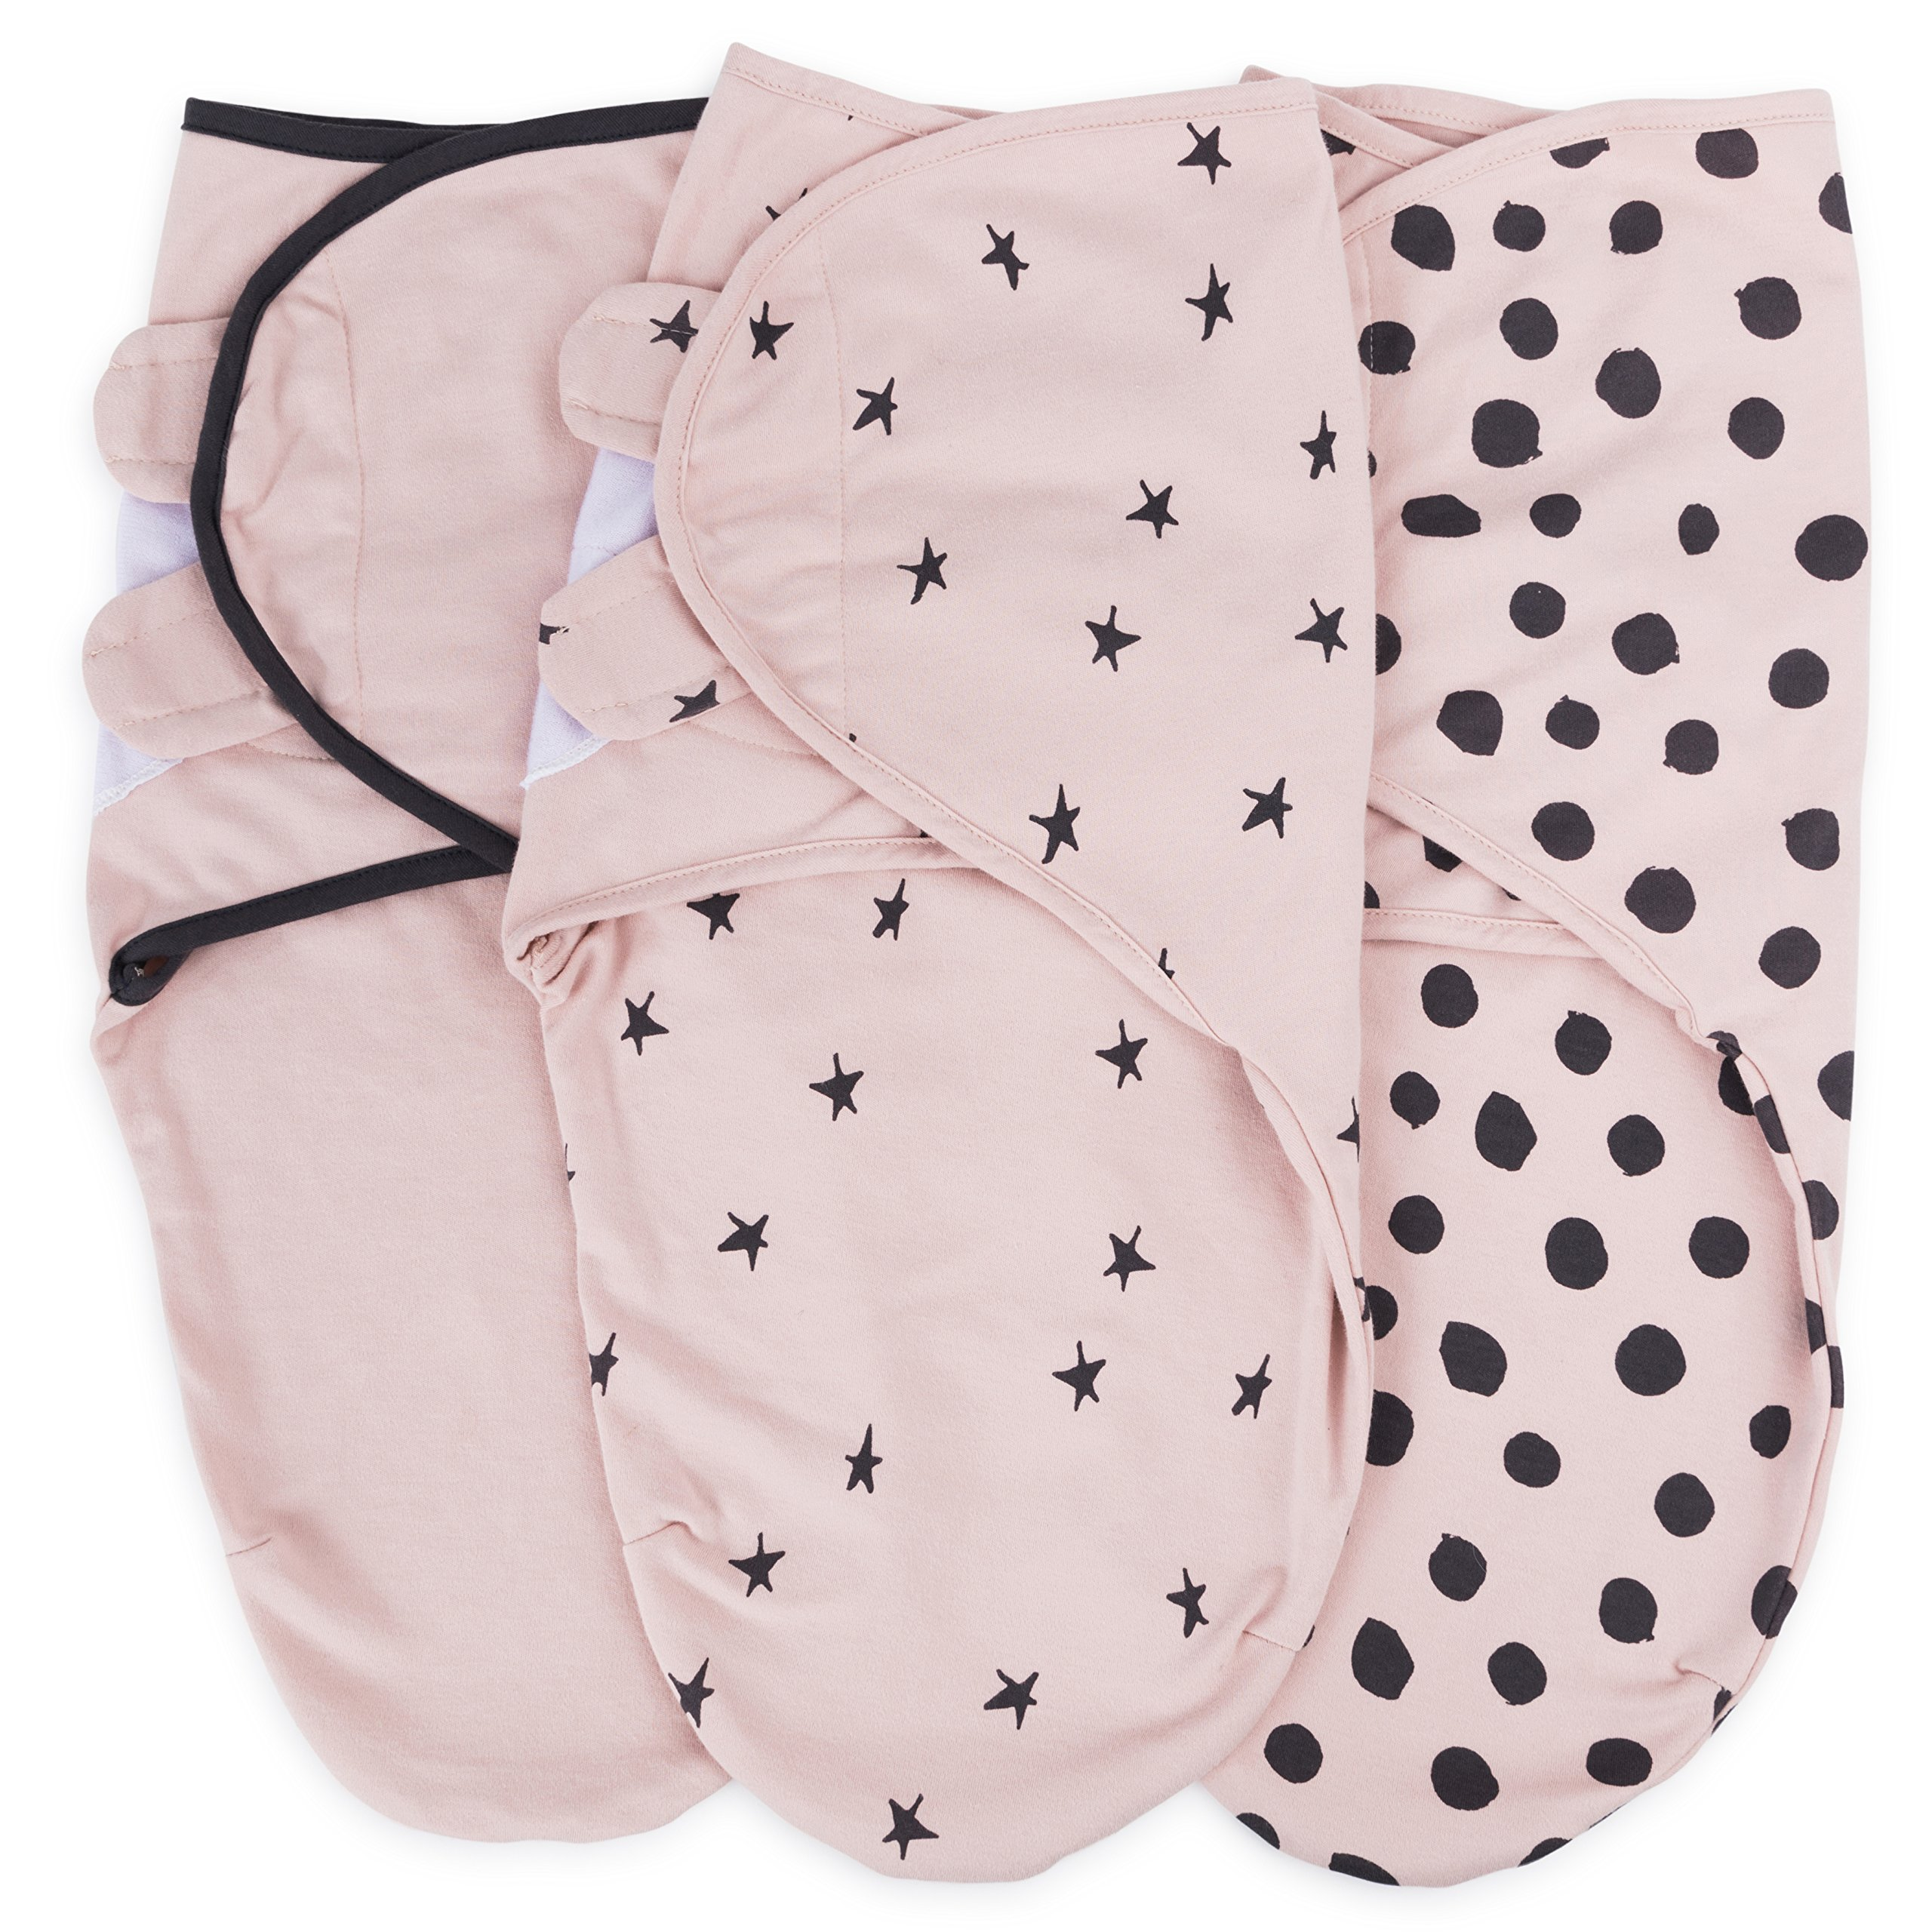 Adjustable Swaddle Blanket Infant Baby Wrap Set 3 Pack 0-3 Months by Ely's & Co. (Blush Pink, 0-3 Months) by Ely's & Co.